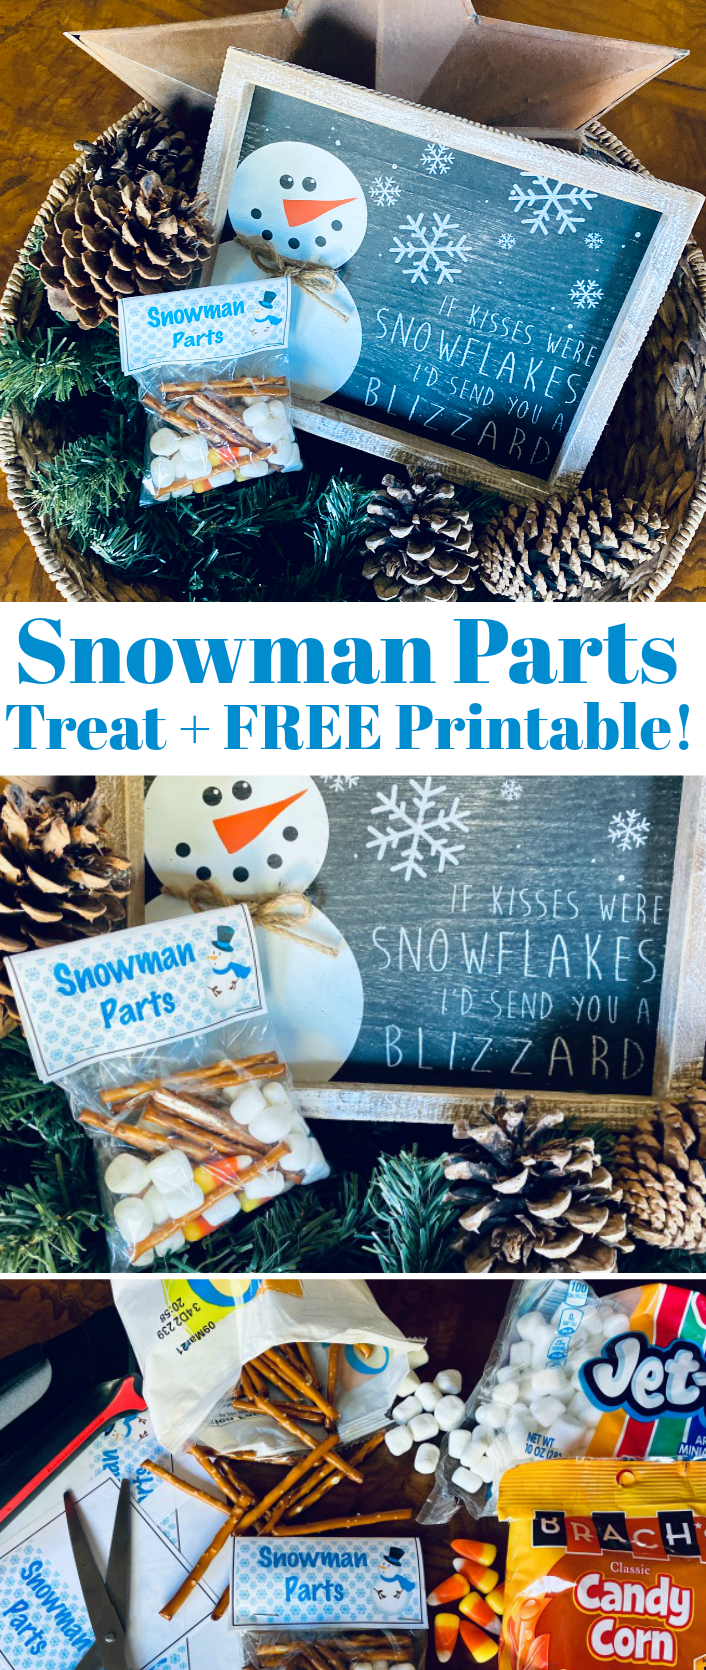 Snowman Parts FREE Printable for Disney Frozen Movie themed snacks